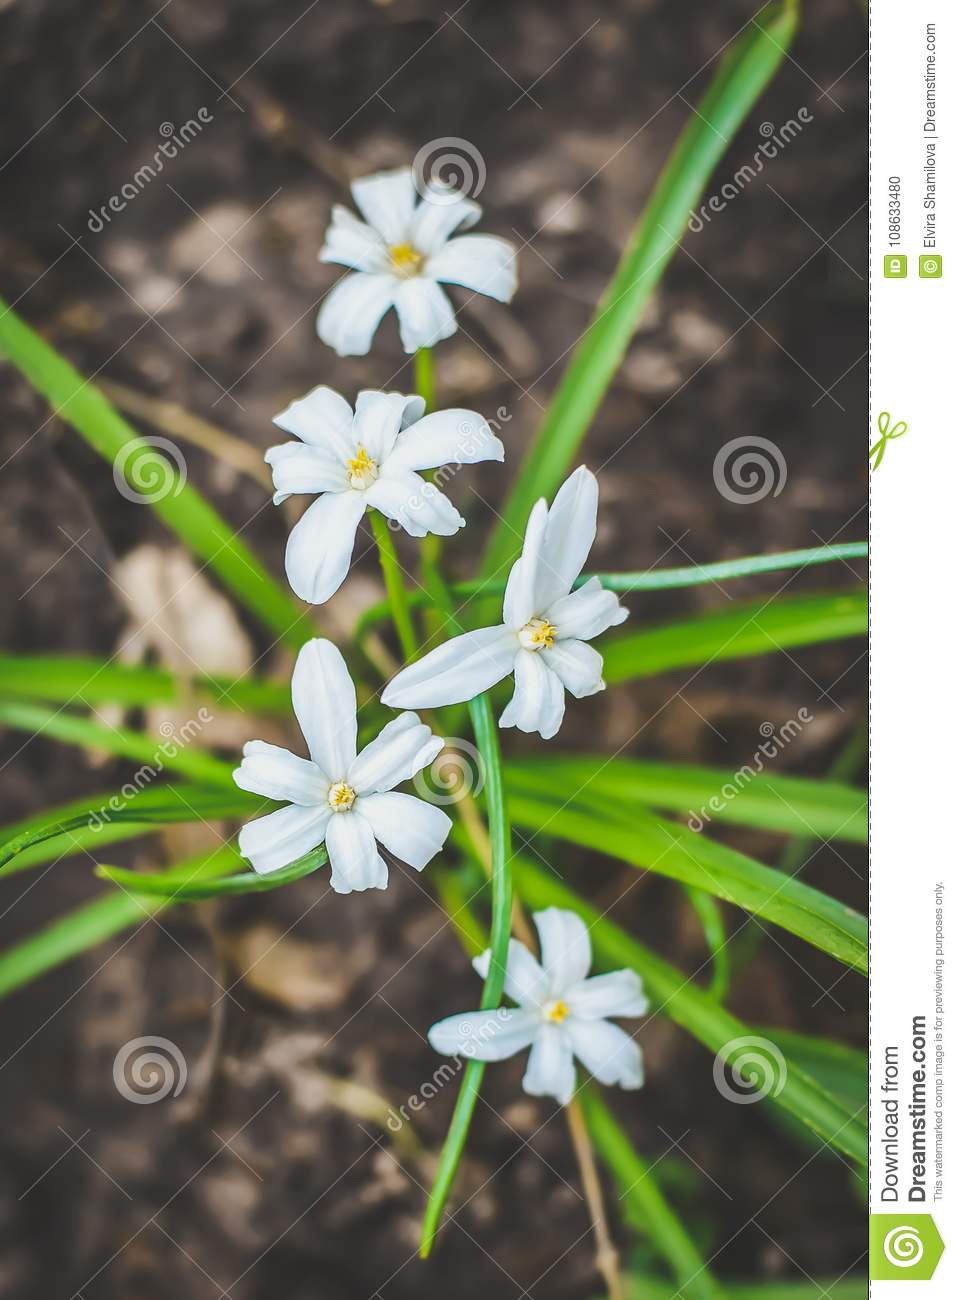 Small white flowers with green leaves stock photo image of small white flowers with green leaves mightylinksfo